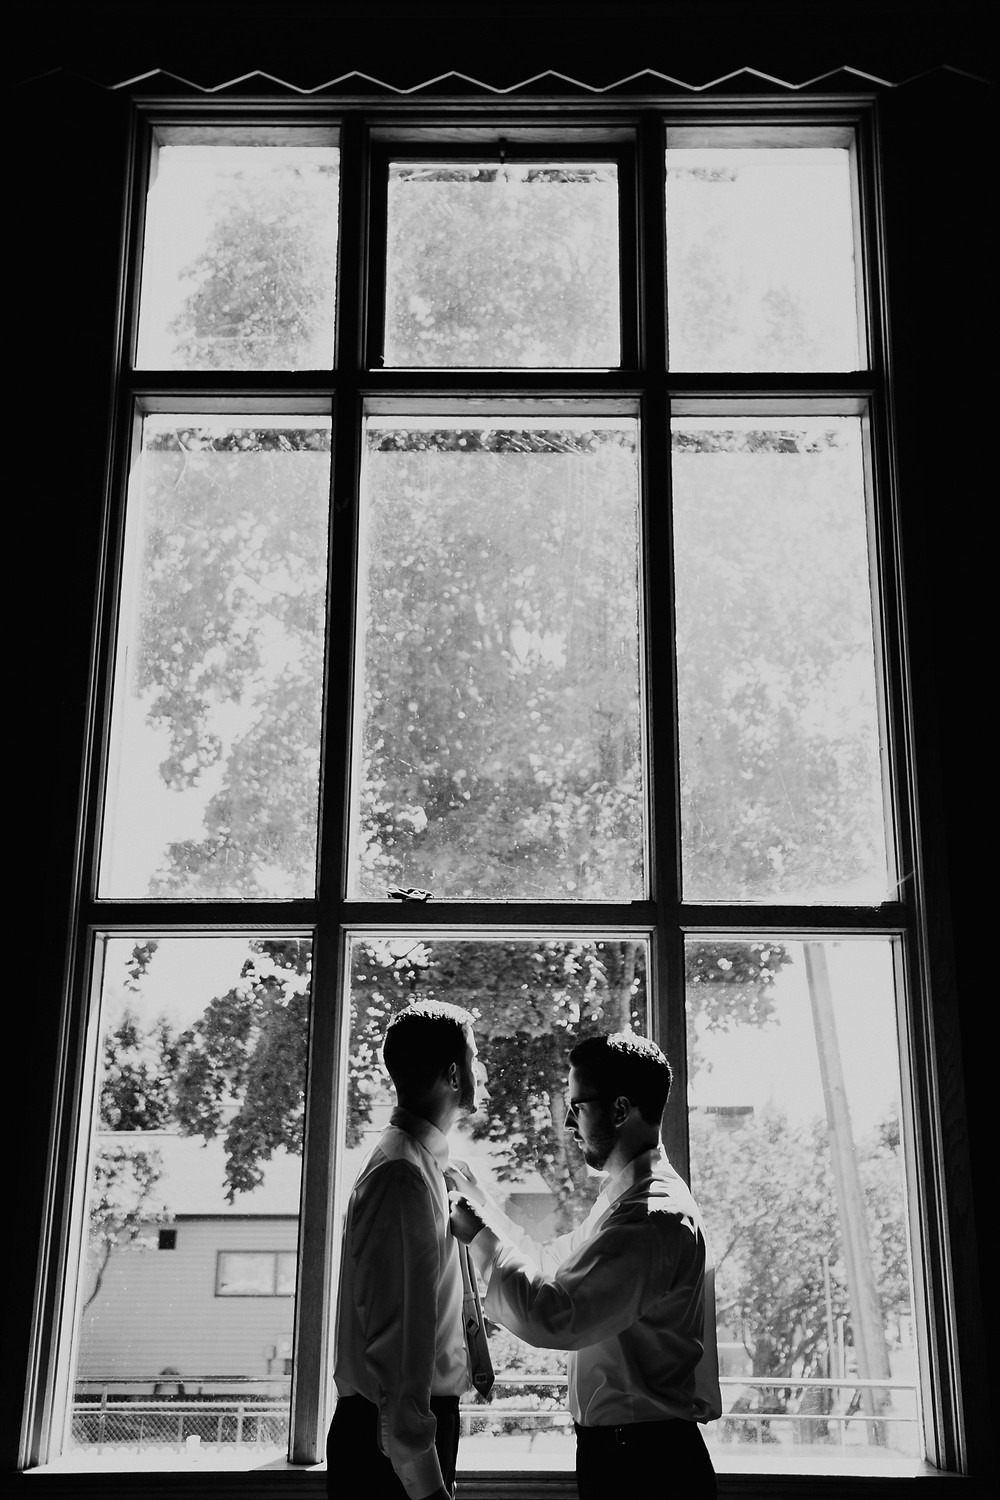 Silhouette photo in black and white of groom and best man. Photographed by Nicole Leanne Photography.